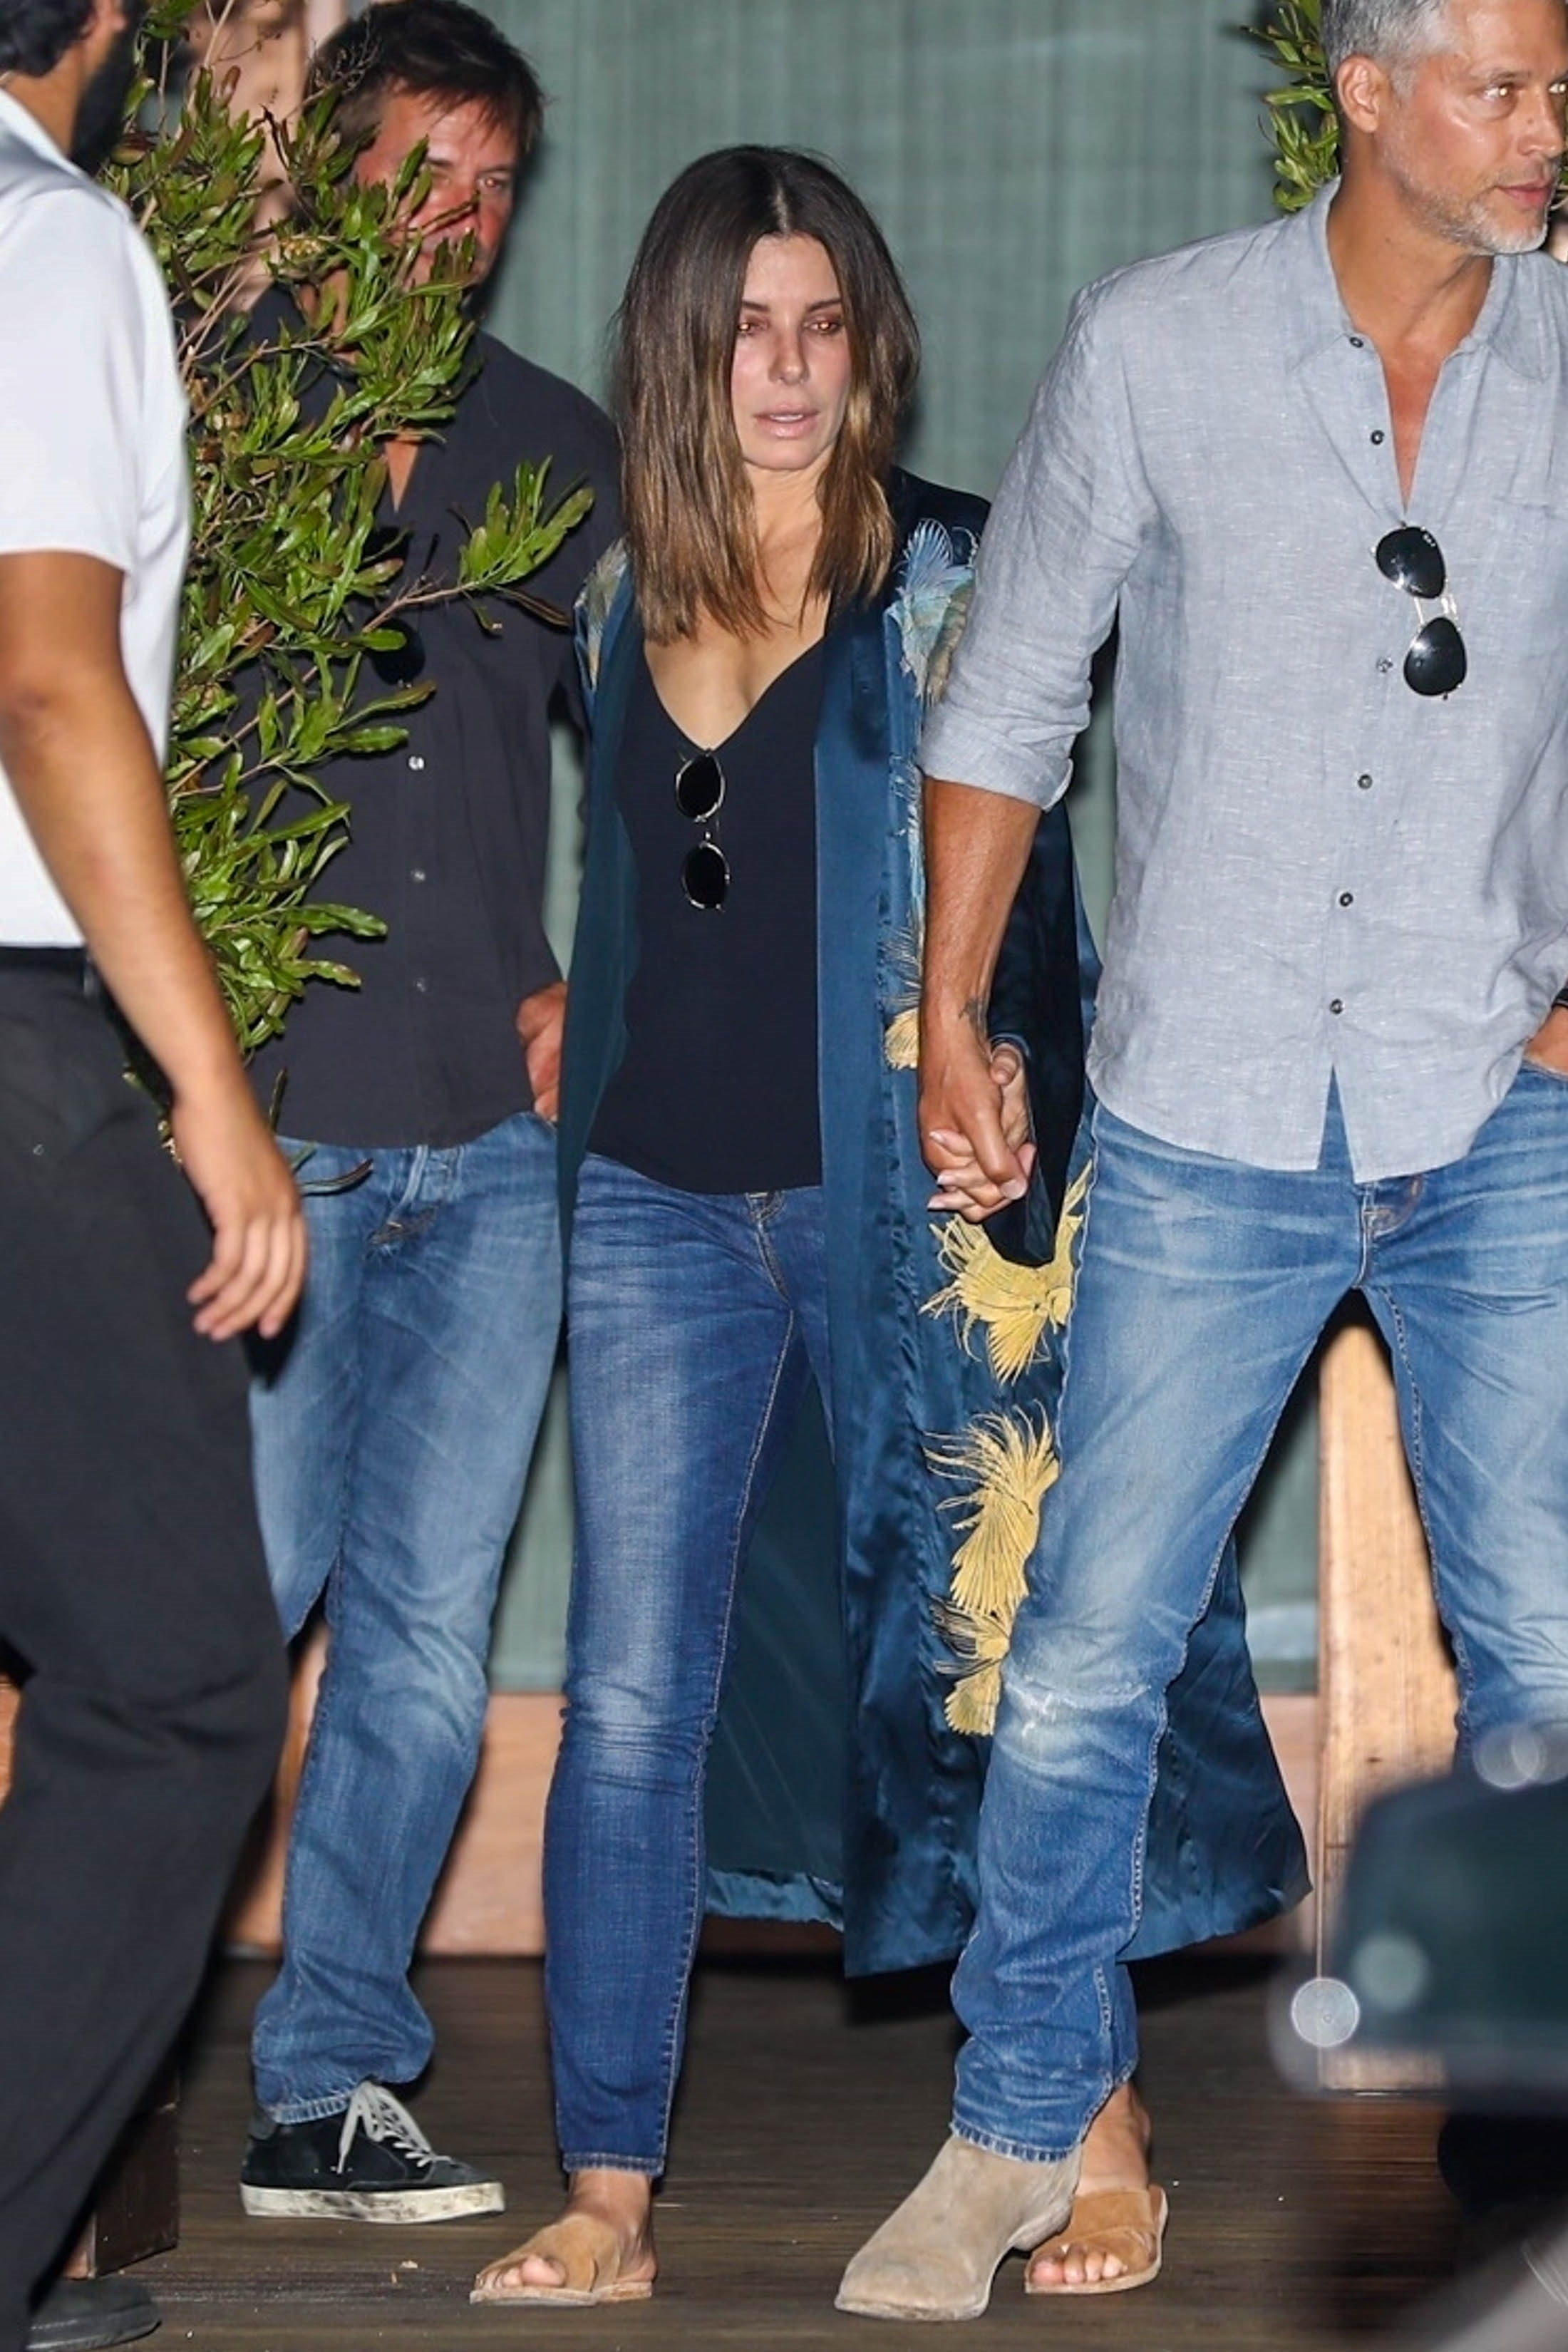 Sandra Bullock and her boyfriend Bryan Randall were seen holding hands as they left Soho House in Los Angeles on Sept. 1, 2018.